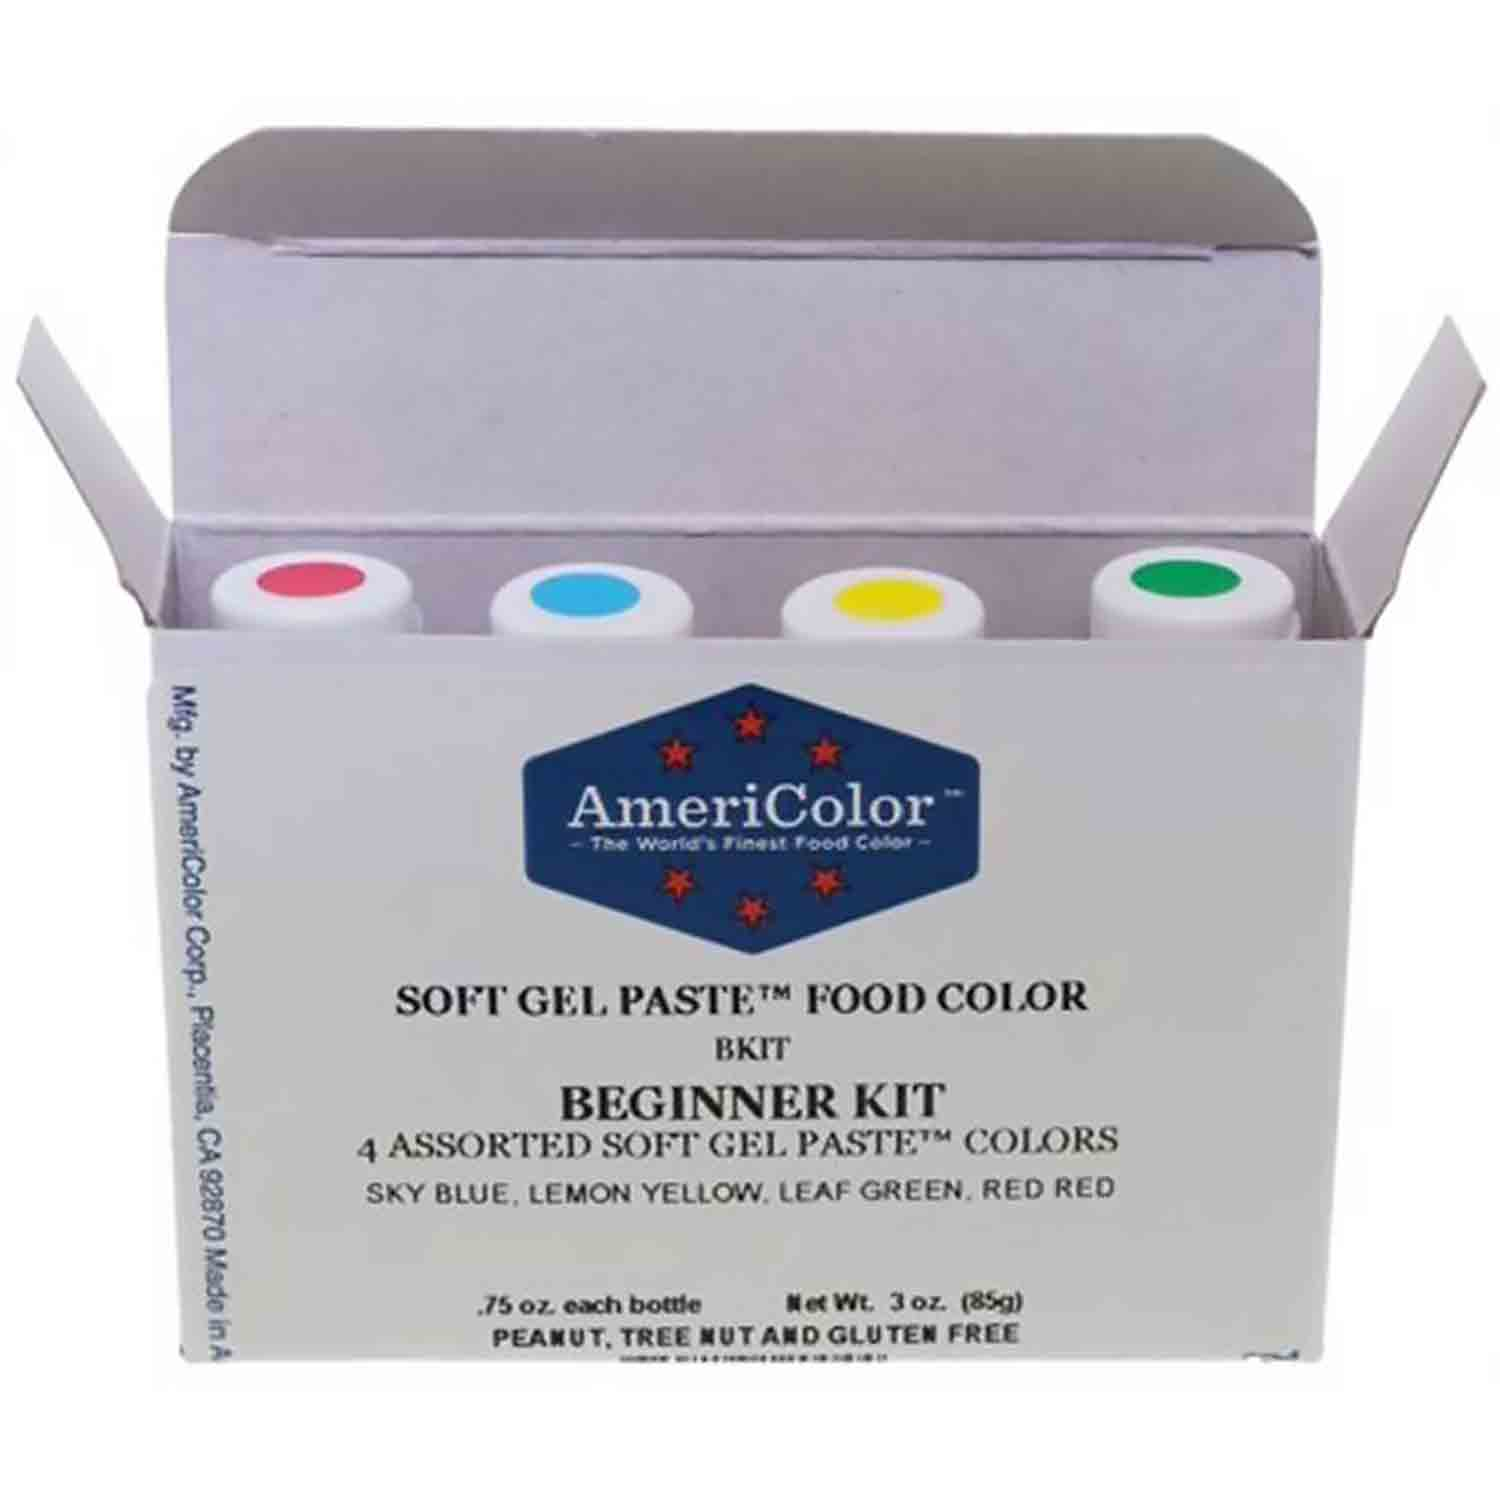 Beginner AmeriColor® Soft Gel Paste™ Food Color Kit